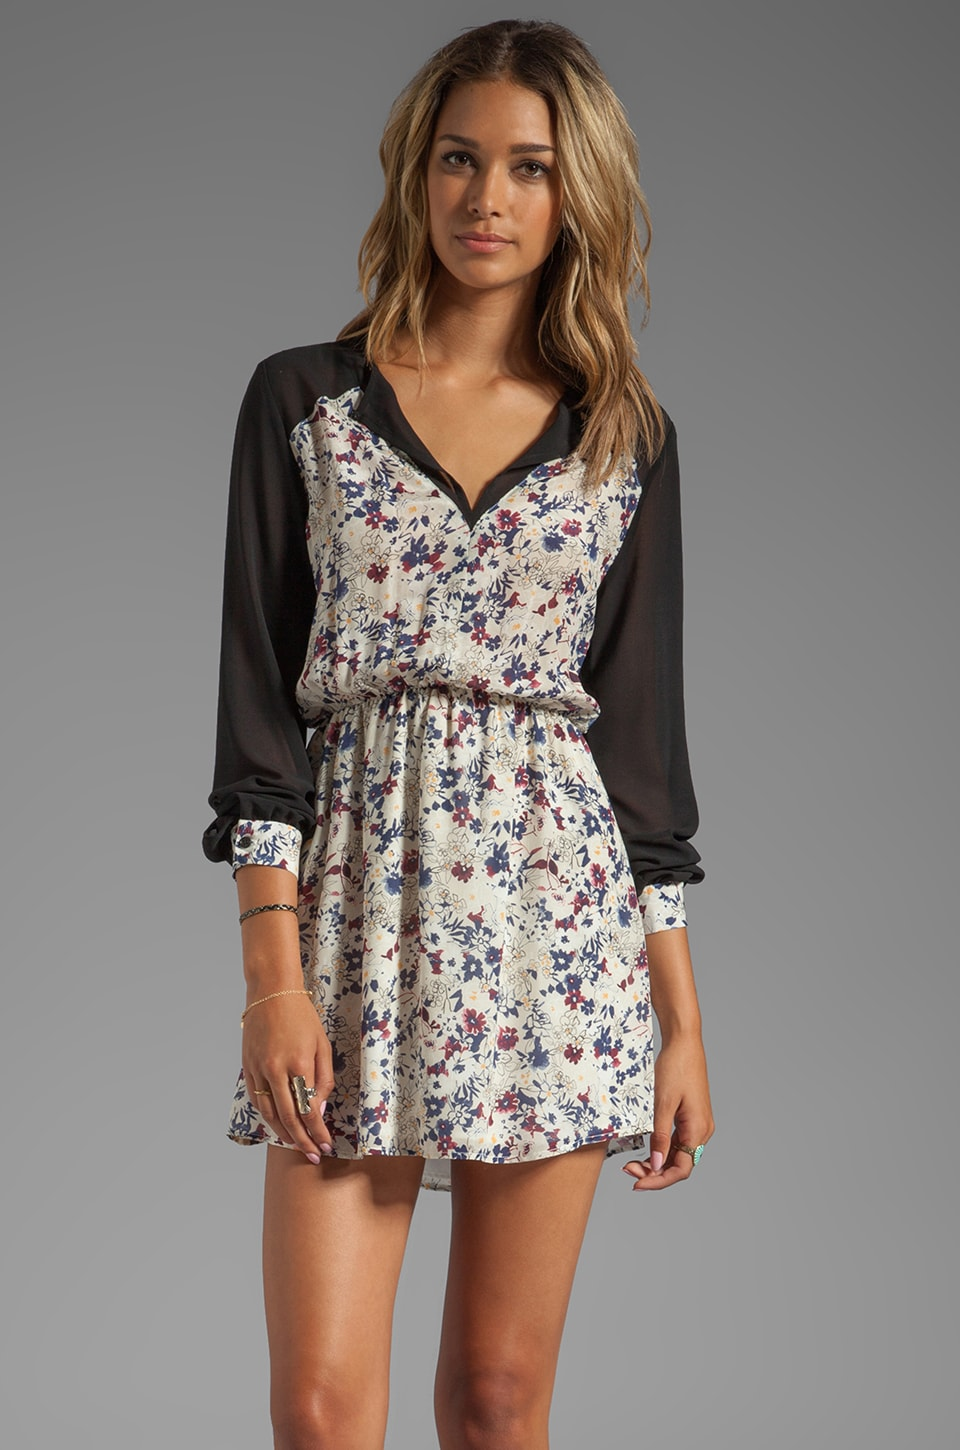 Charles Henry Contrast Sleeve Mini Dress in Floral